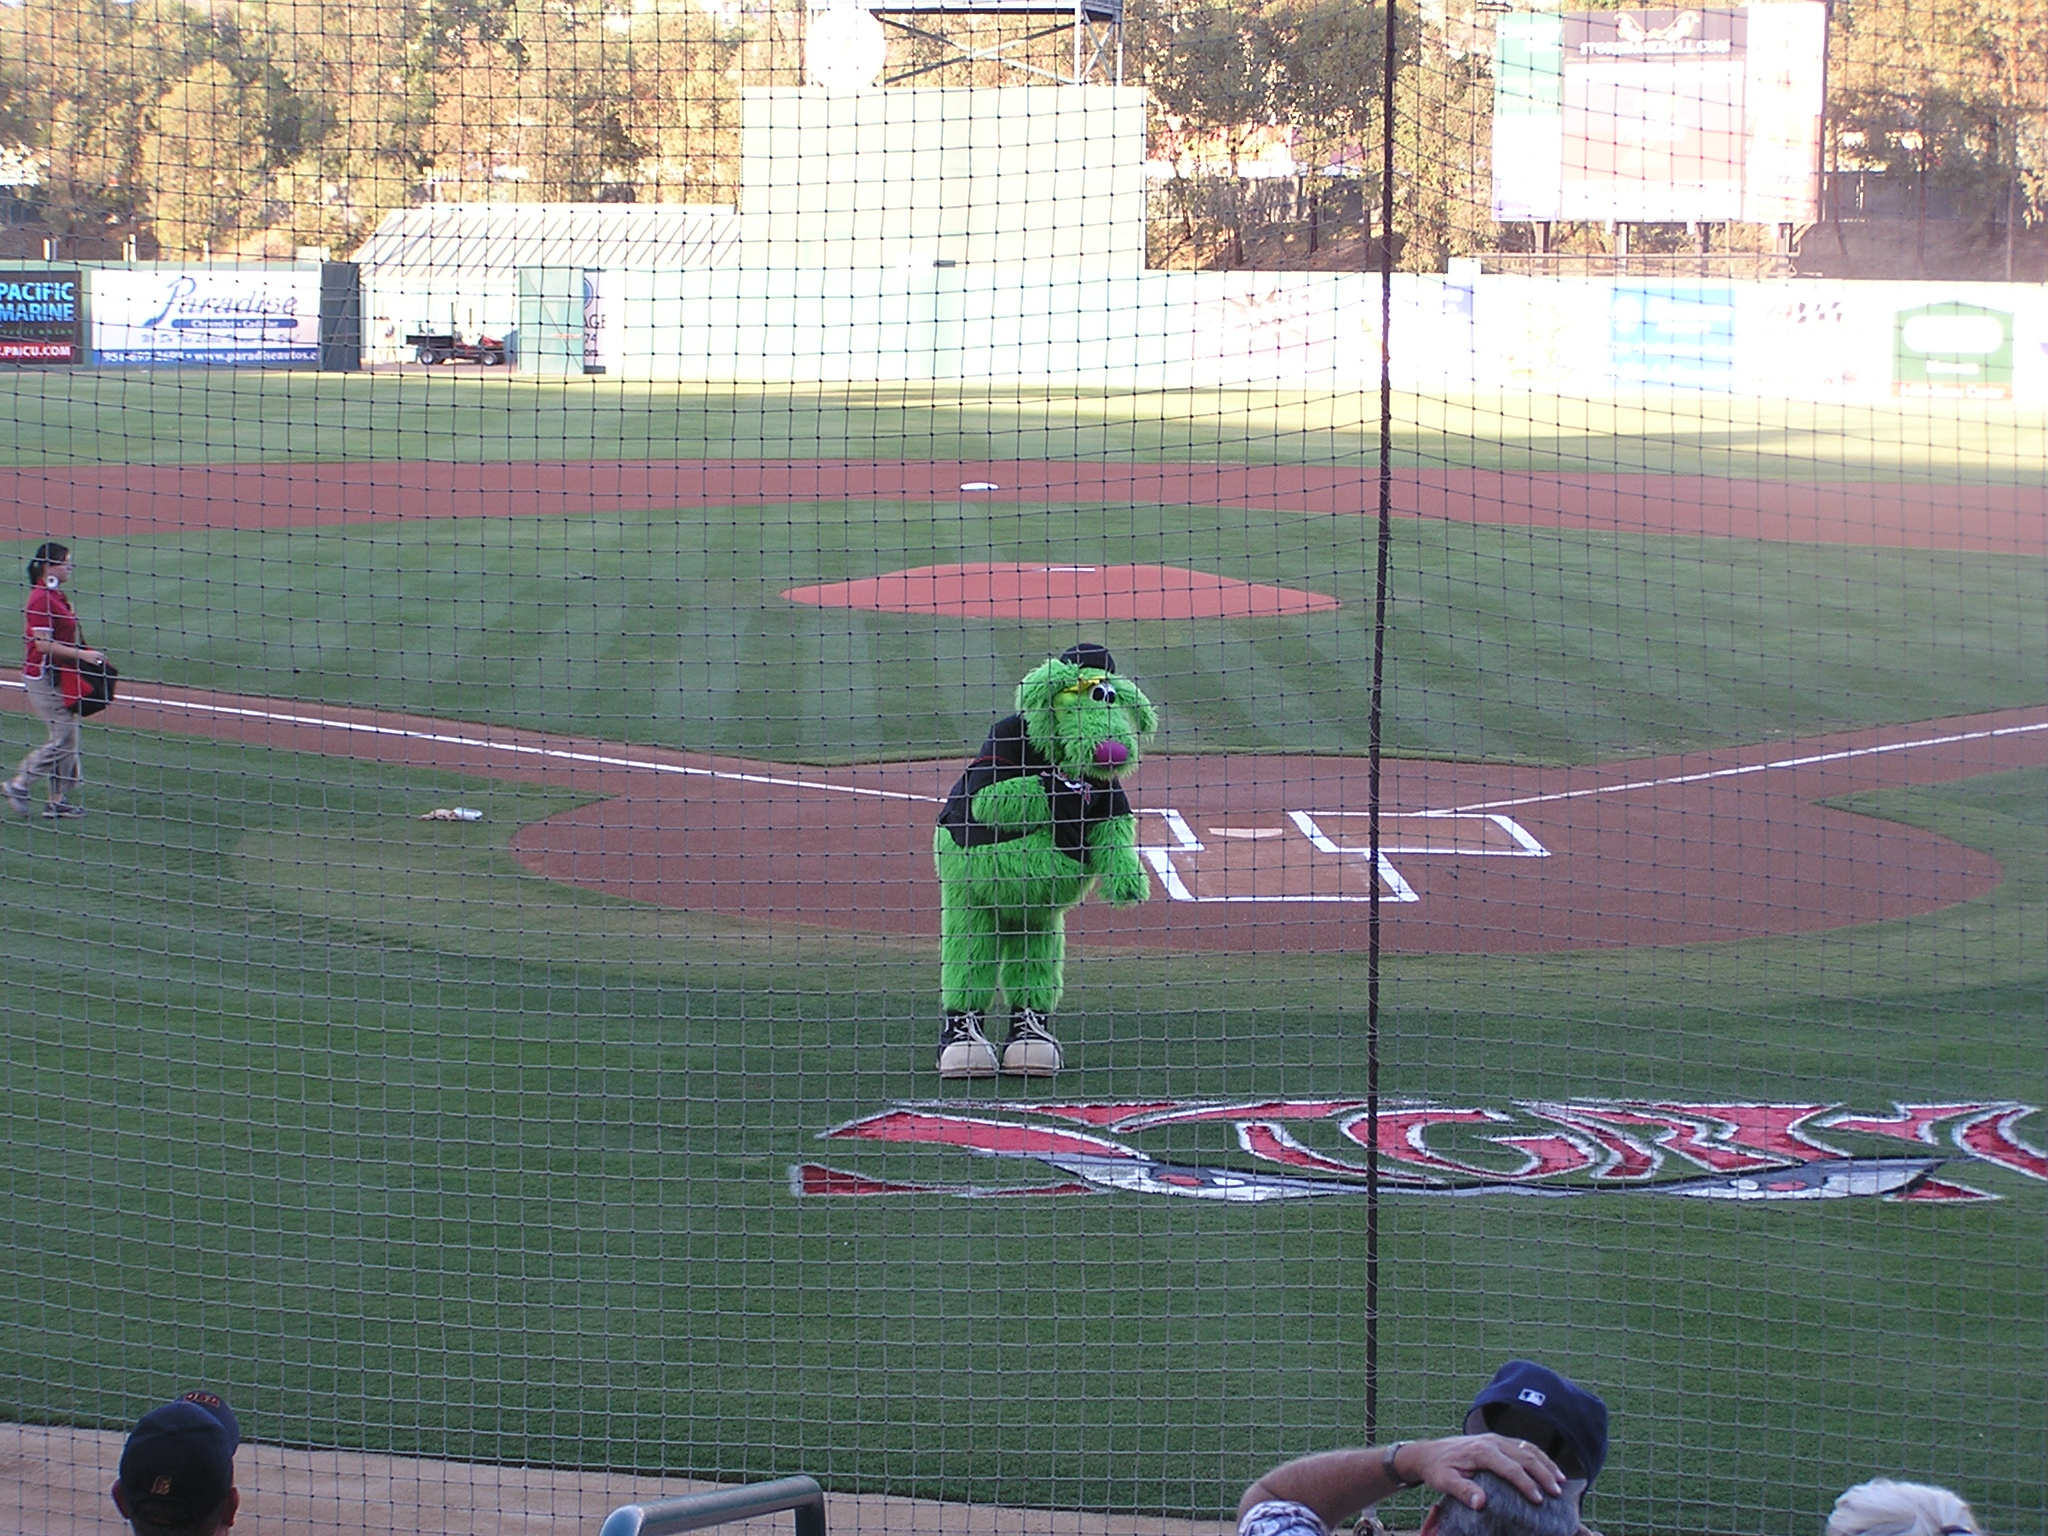 Thunder, the Lake Elsinore Mascot